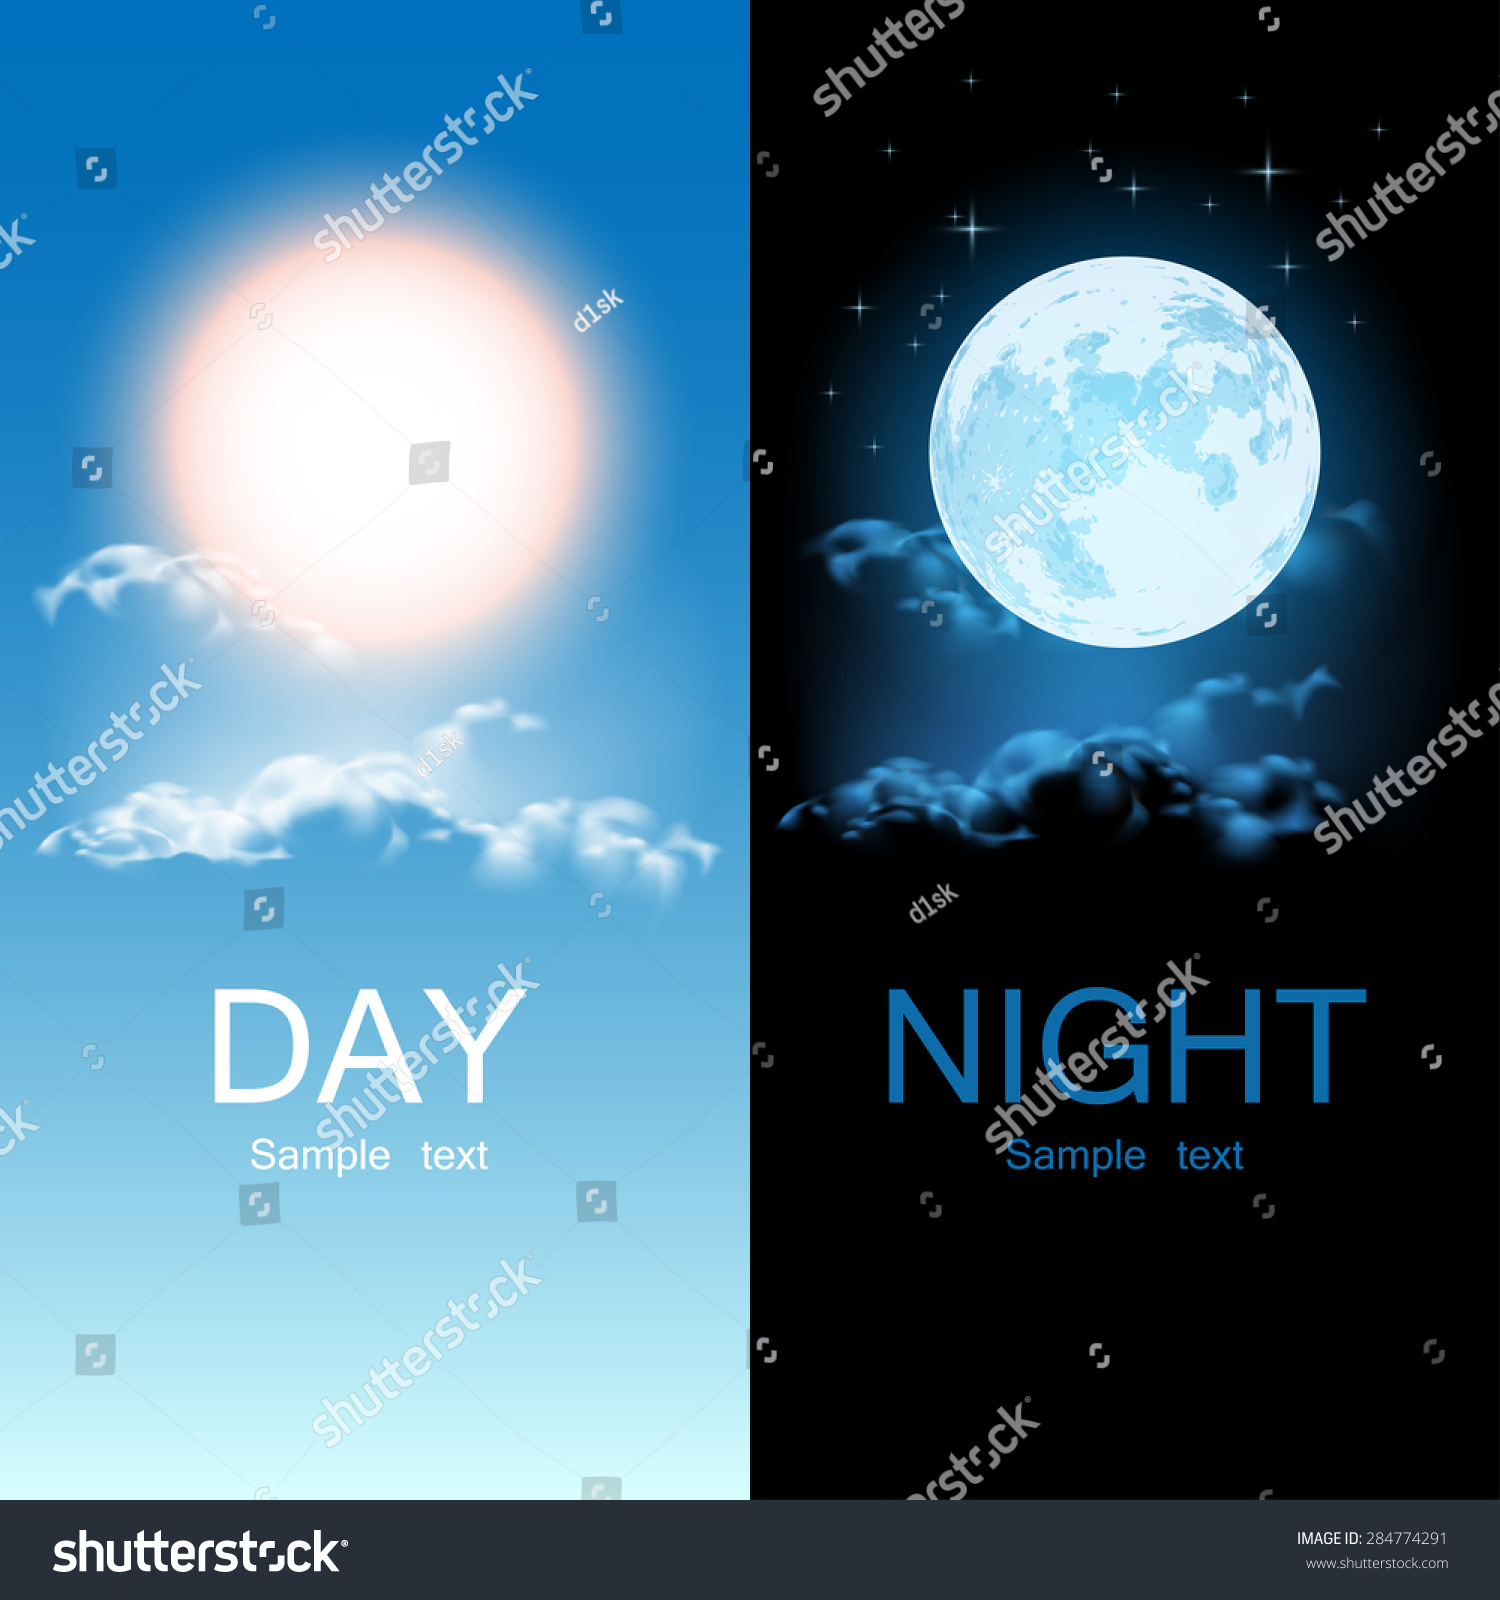 day night illustration stock vector 284774291 shutterstock. Black Bedroom Furniture Sets. Home Design Ideas